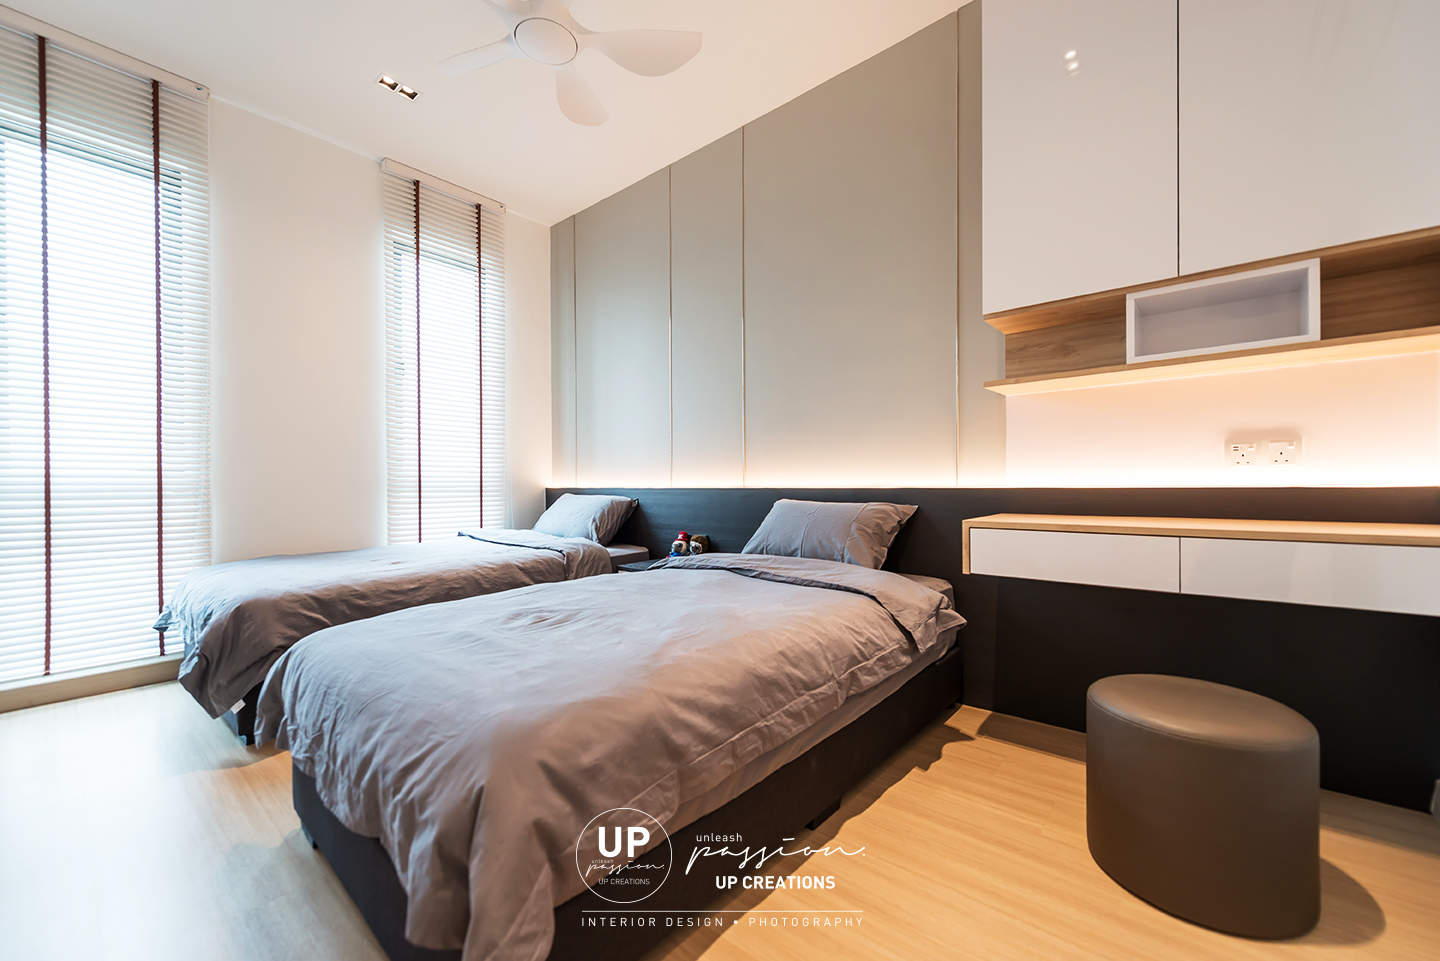 trinity aquata condo guest room with two single beds, bedhead in light grey paint finish and stainless steel inlay and led strip light